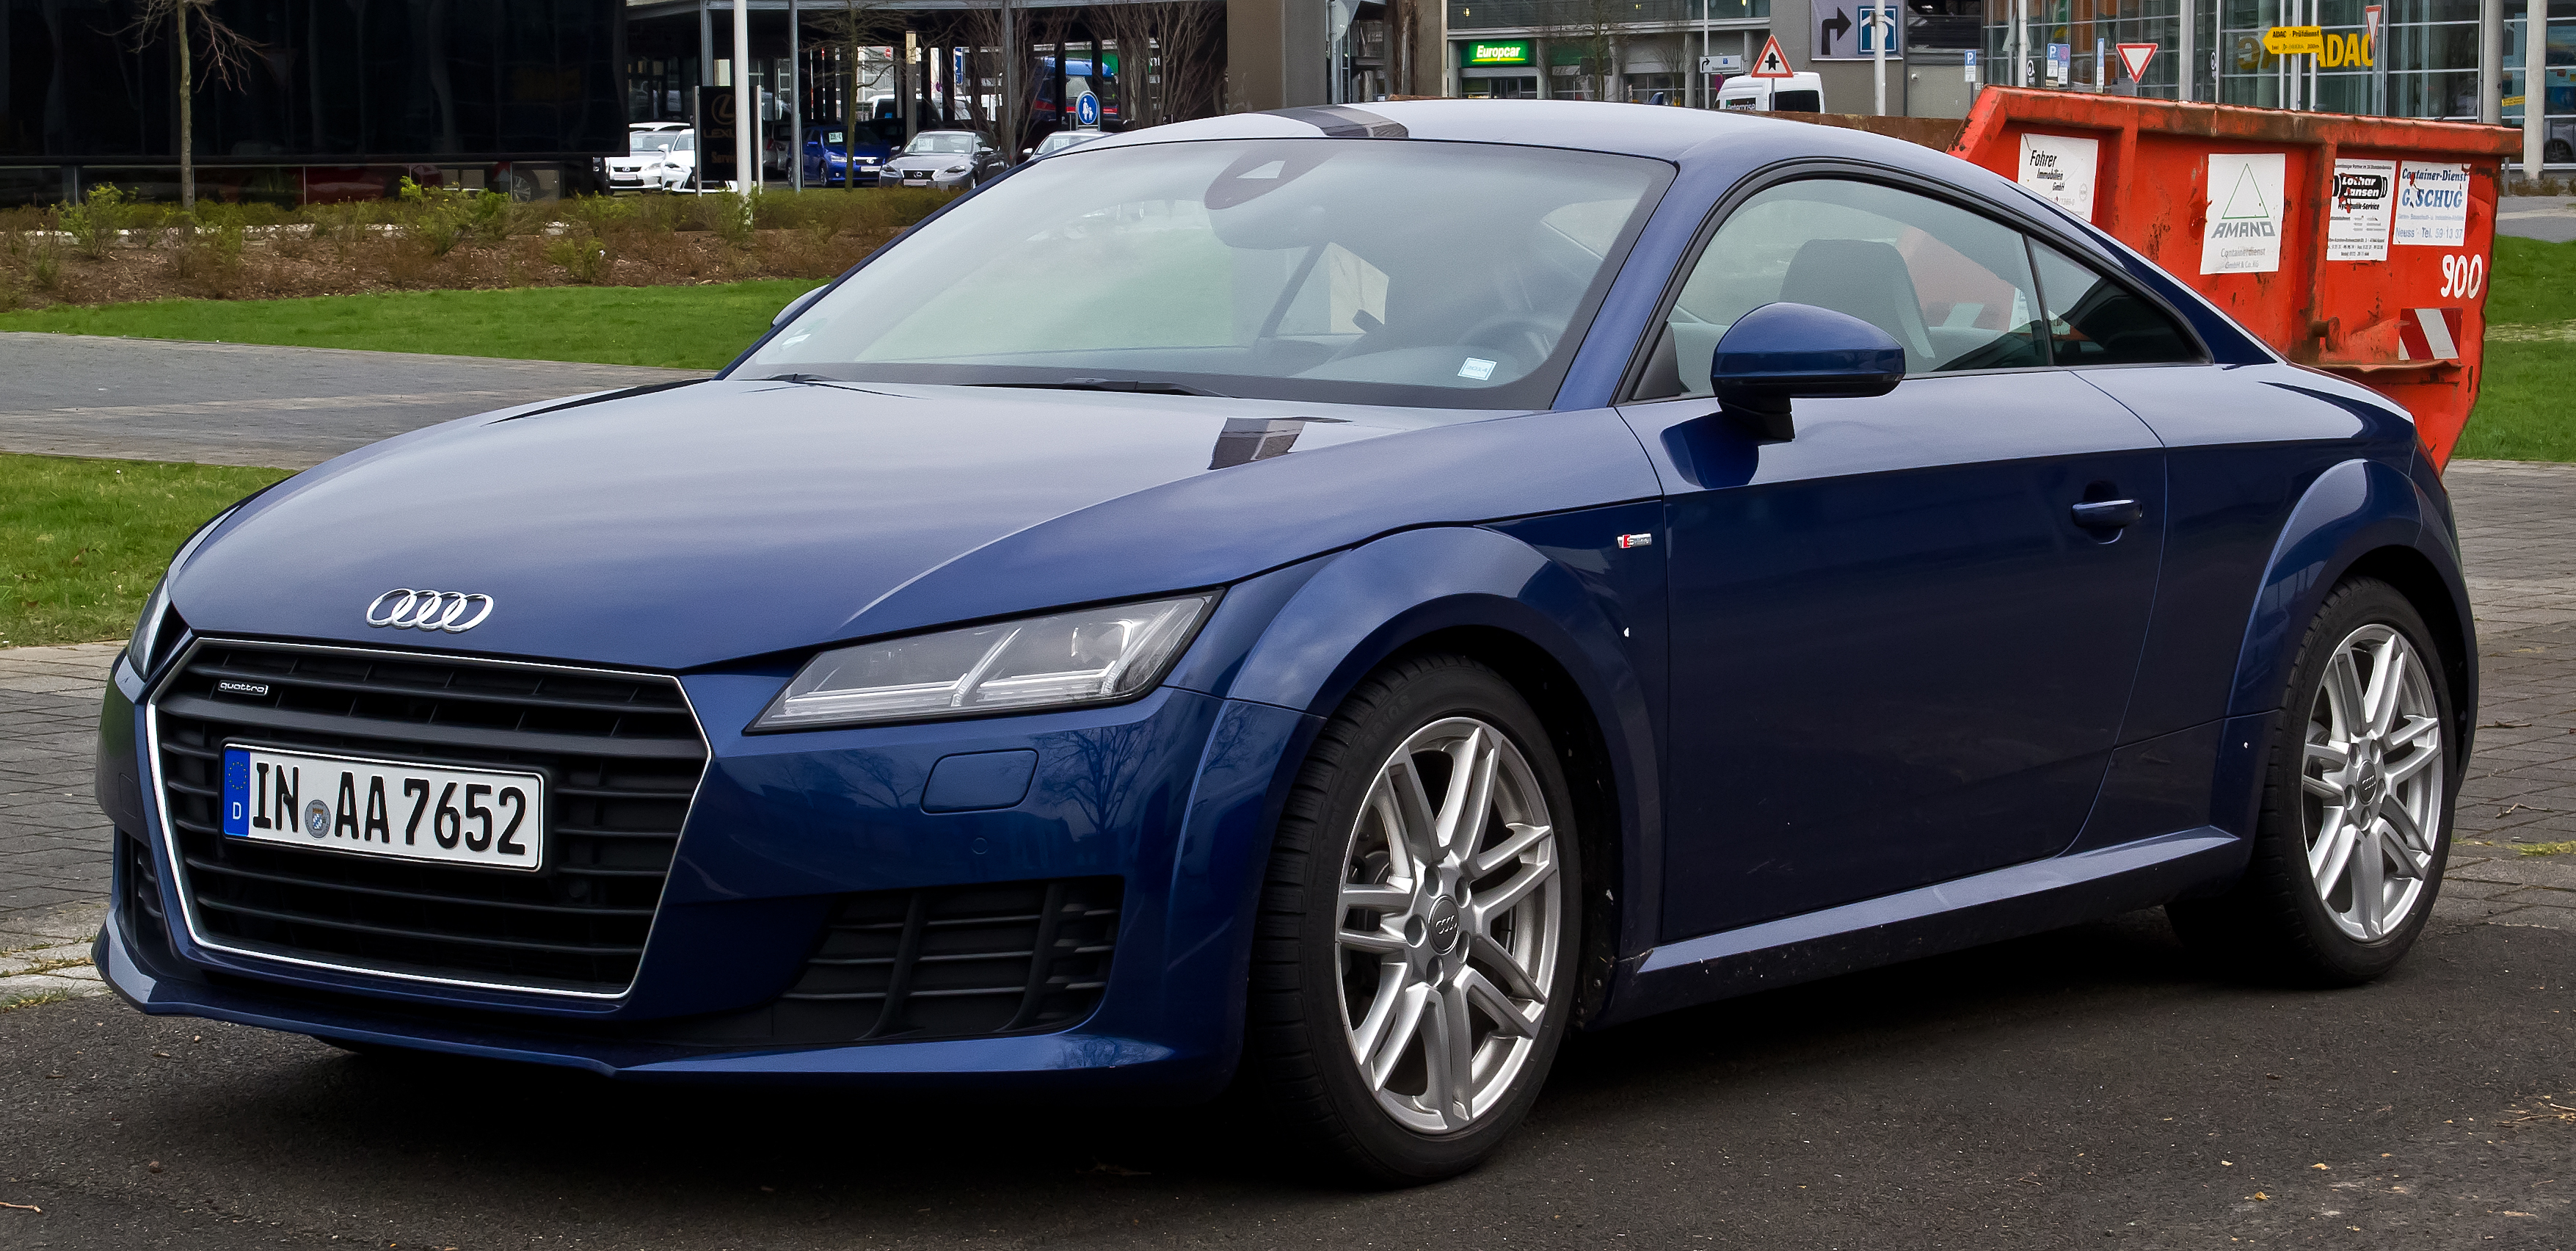 2001 audi tt coupe rs